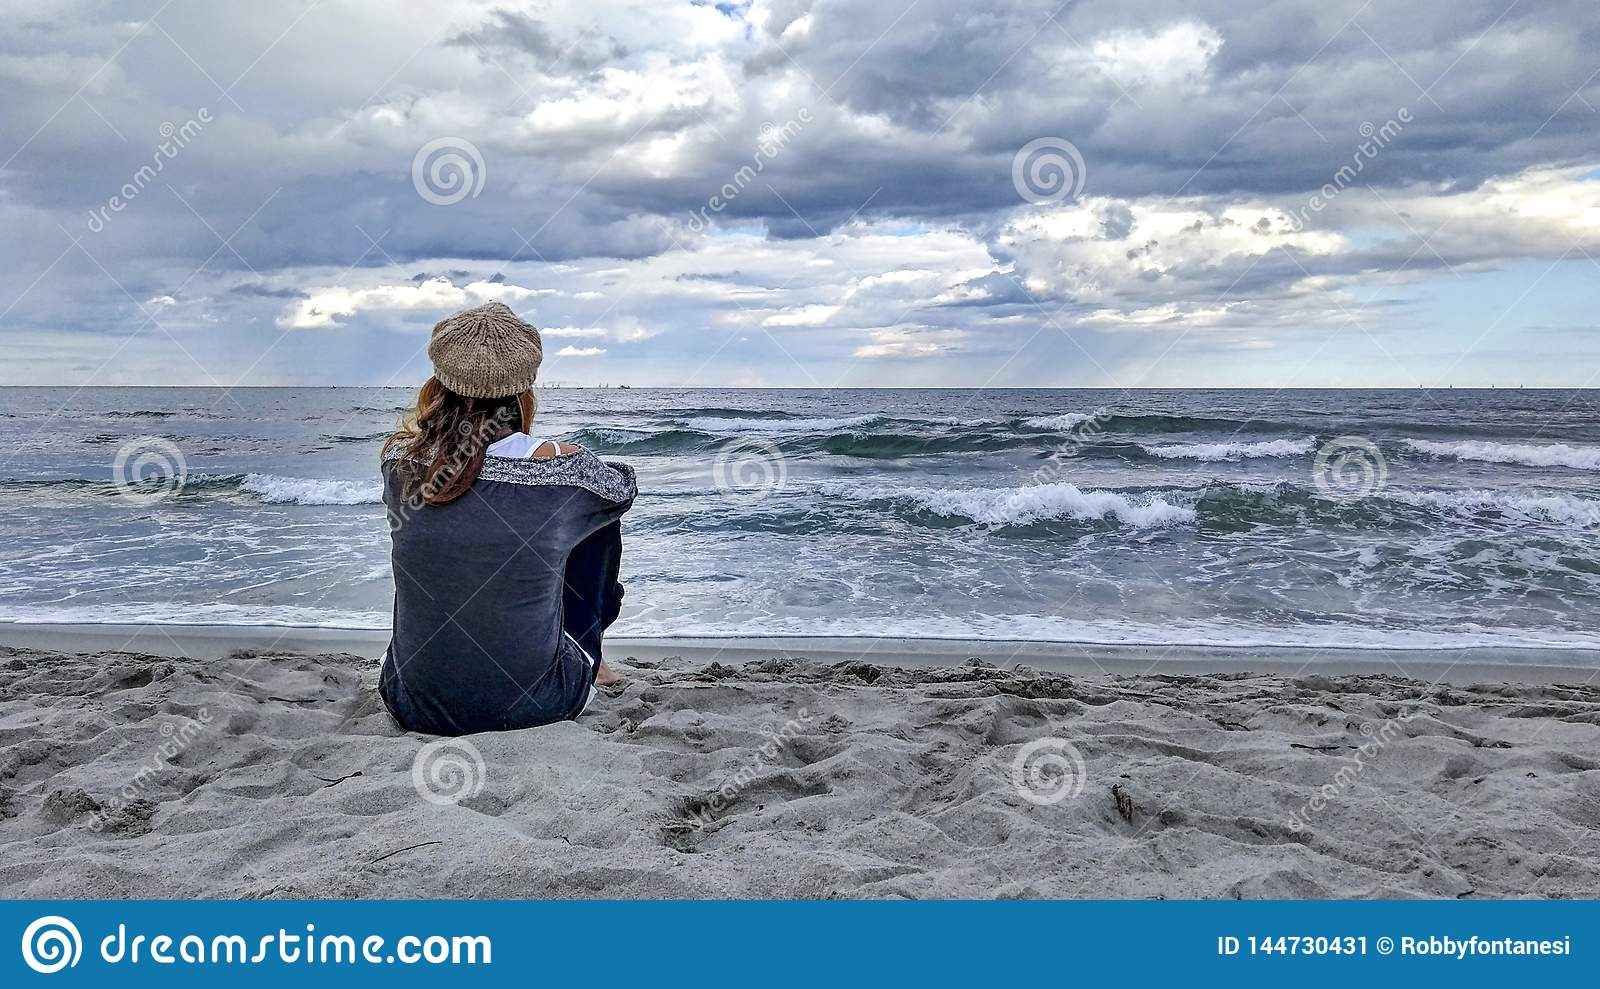 Young woman sitting by the sea with stormy sky, looks at the horizon thoughtfully